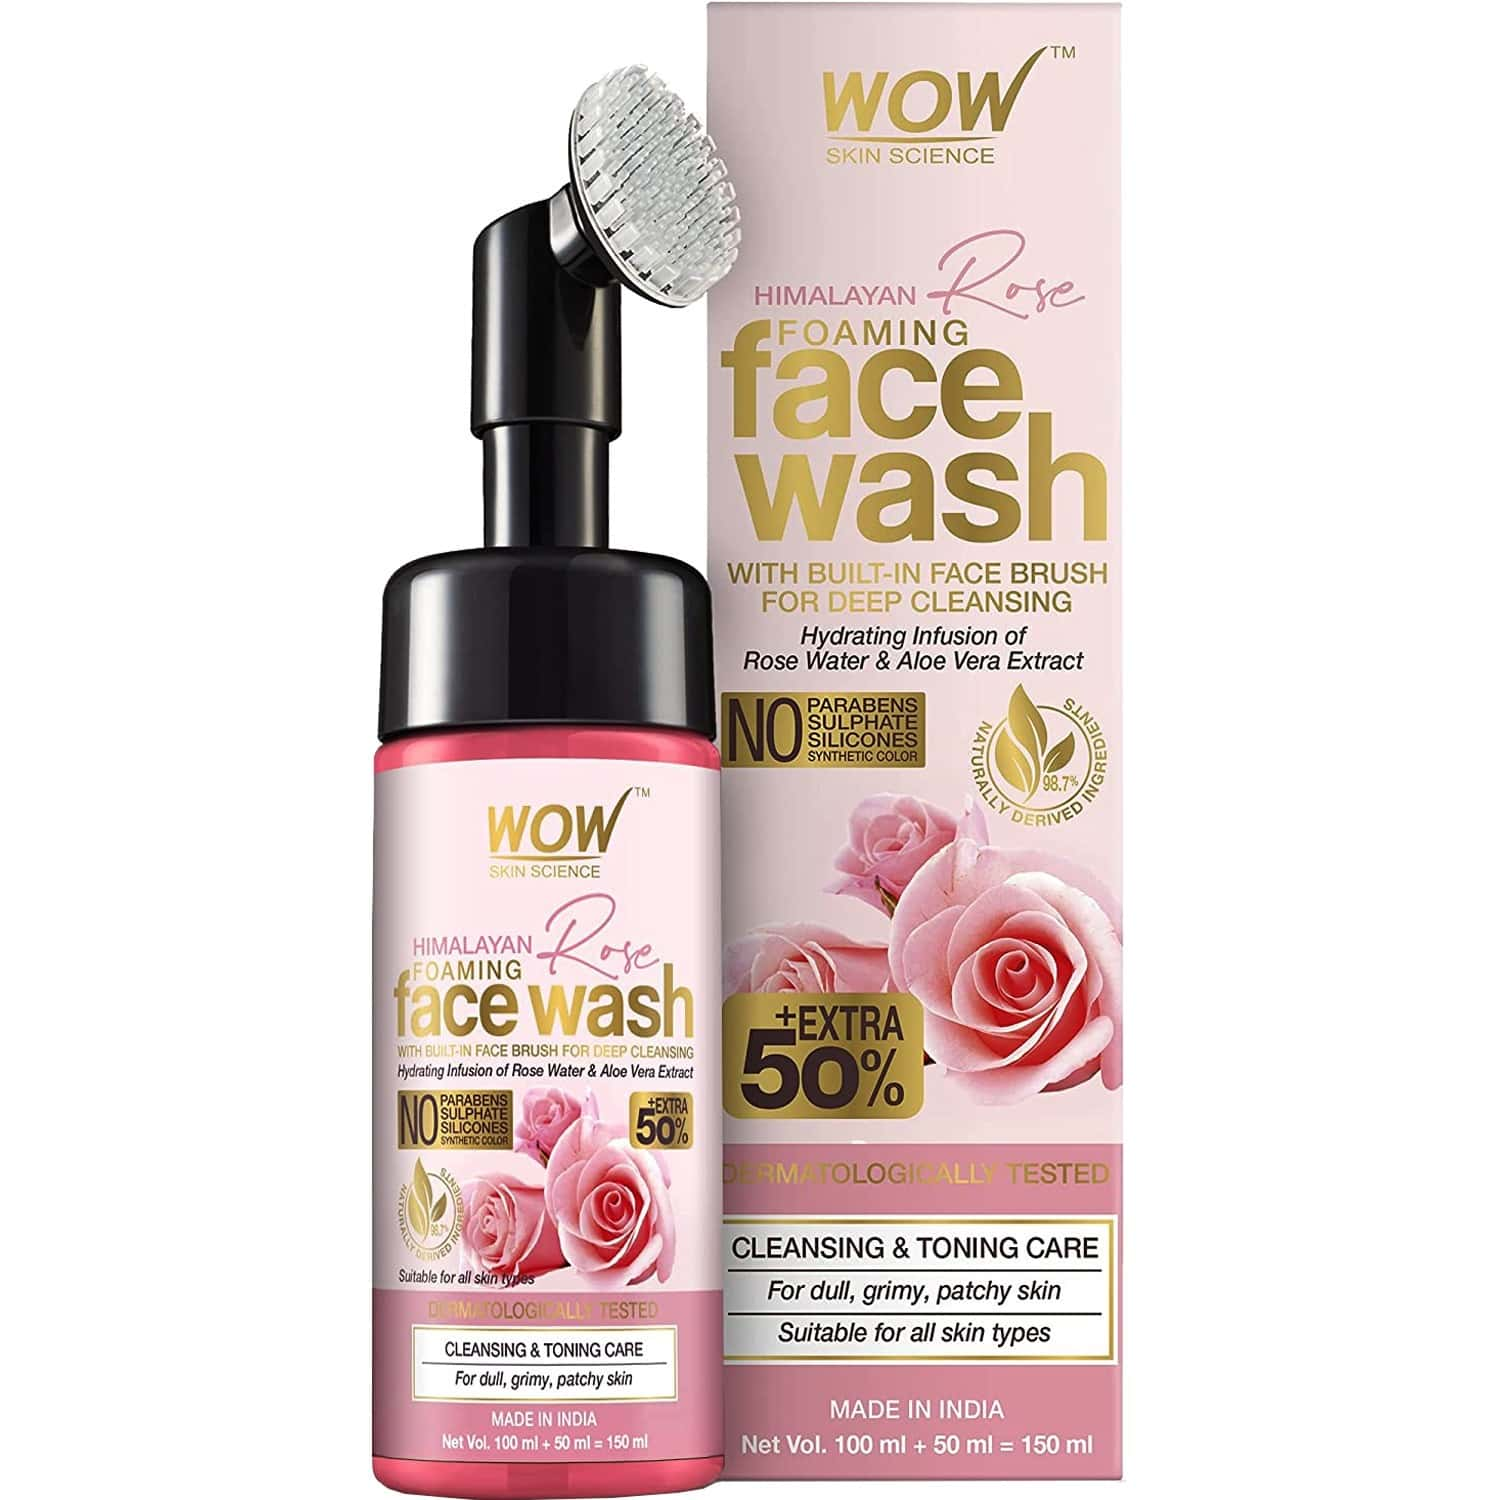 Wow Skin Science Himalayan Rose Foaming Face Wash With Built-in Face Brush - 150 Ml